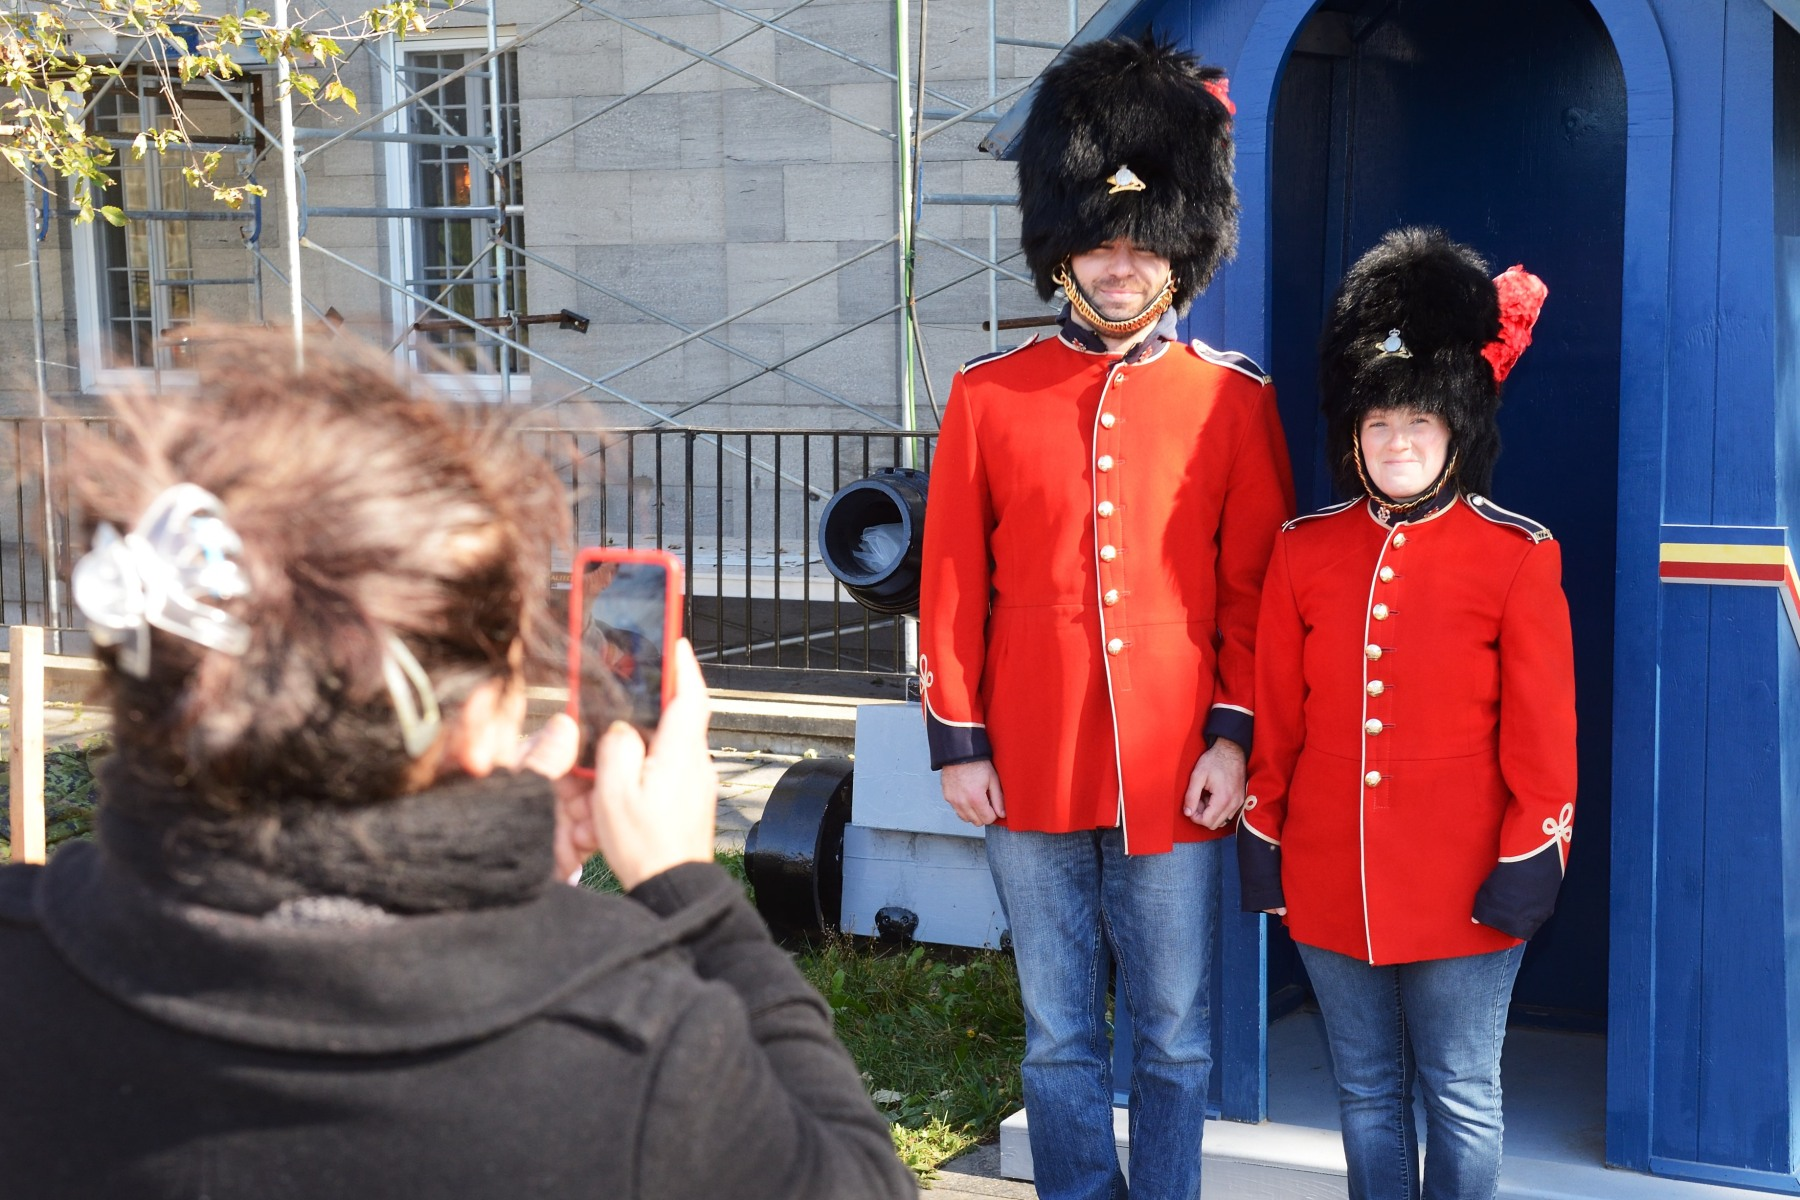 Visitors could try on the renowned red tunic and bearskin hat of the Royal 22e Régiment and snap a photo.